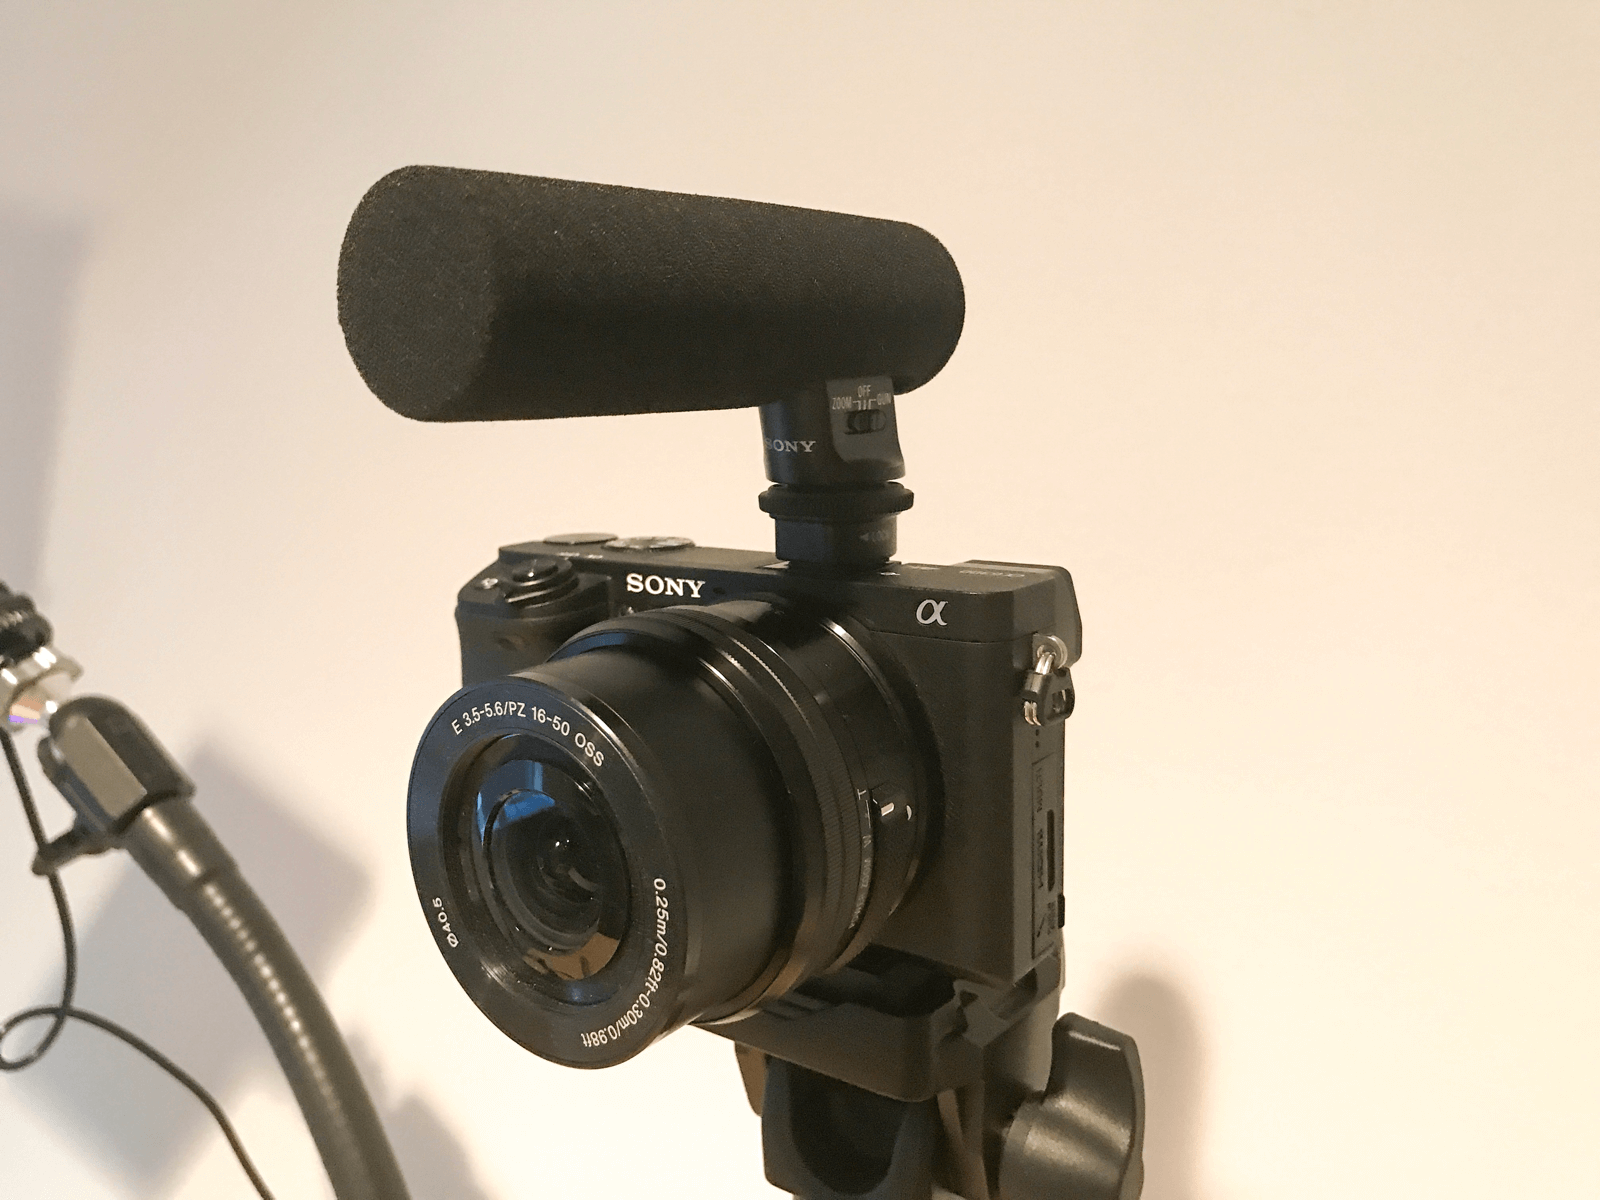 dslr-camera-with-gun-microphone-attached-800@2x